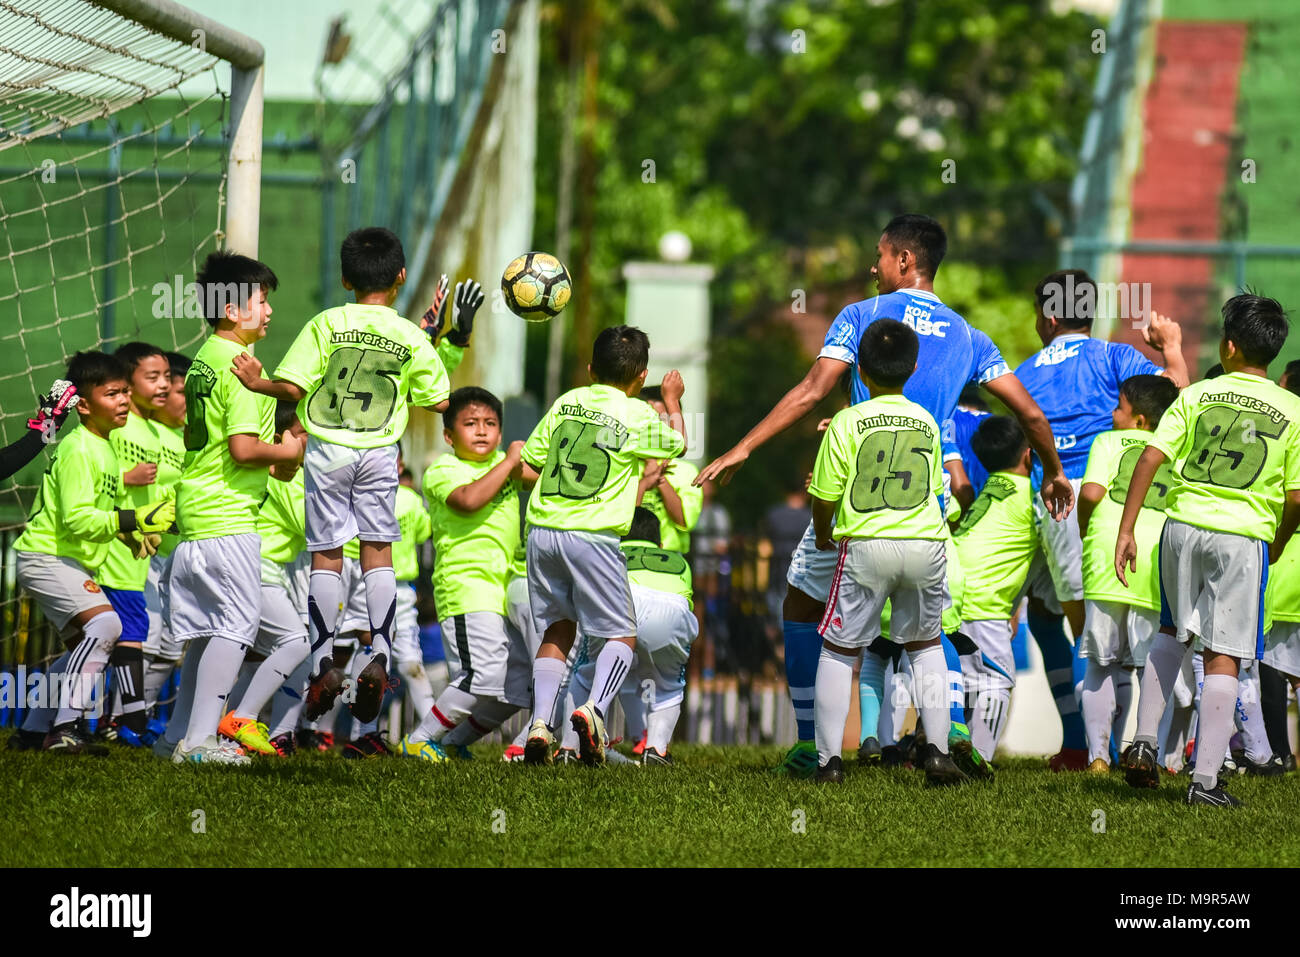 Five players of Indonesian football club of Persib Bandung play against 85 children in an exhibition match to celebrate its 85th anniversary. - Stock Image